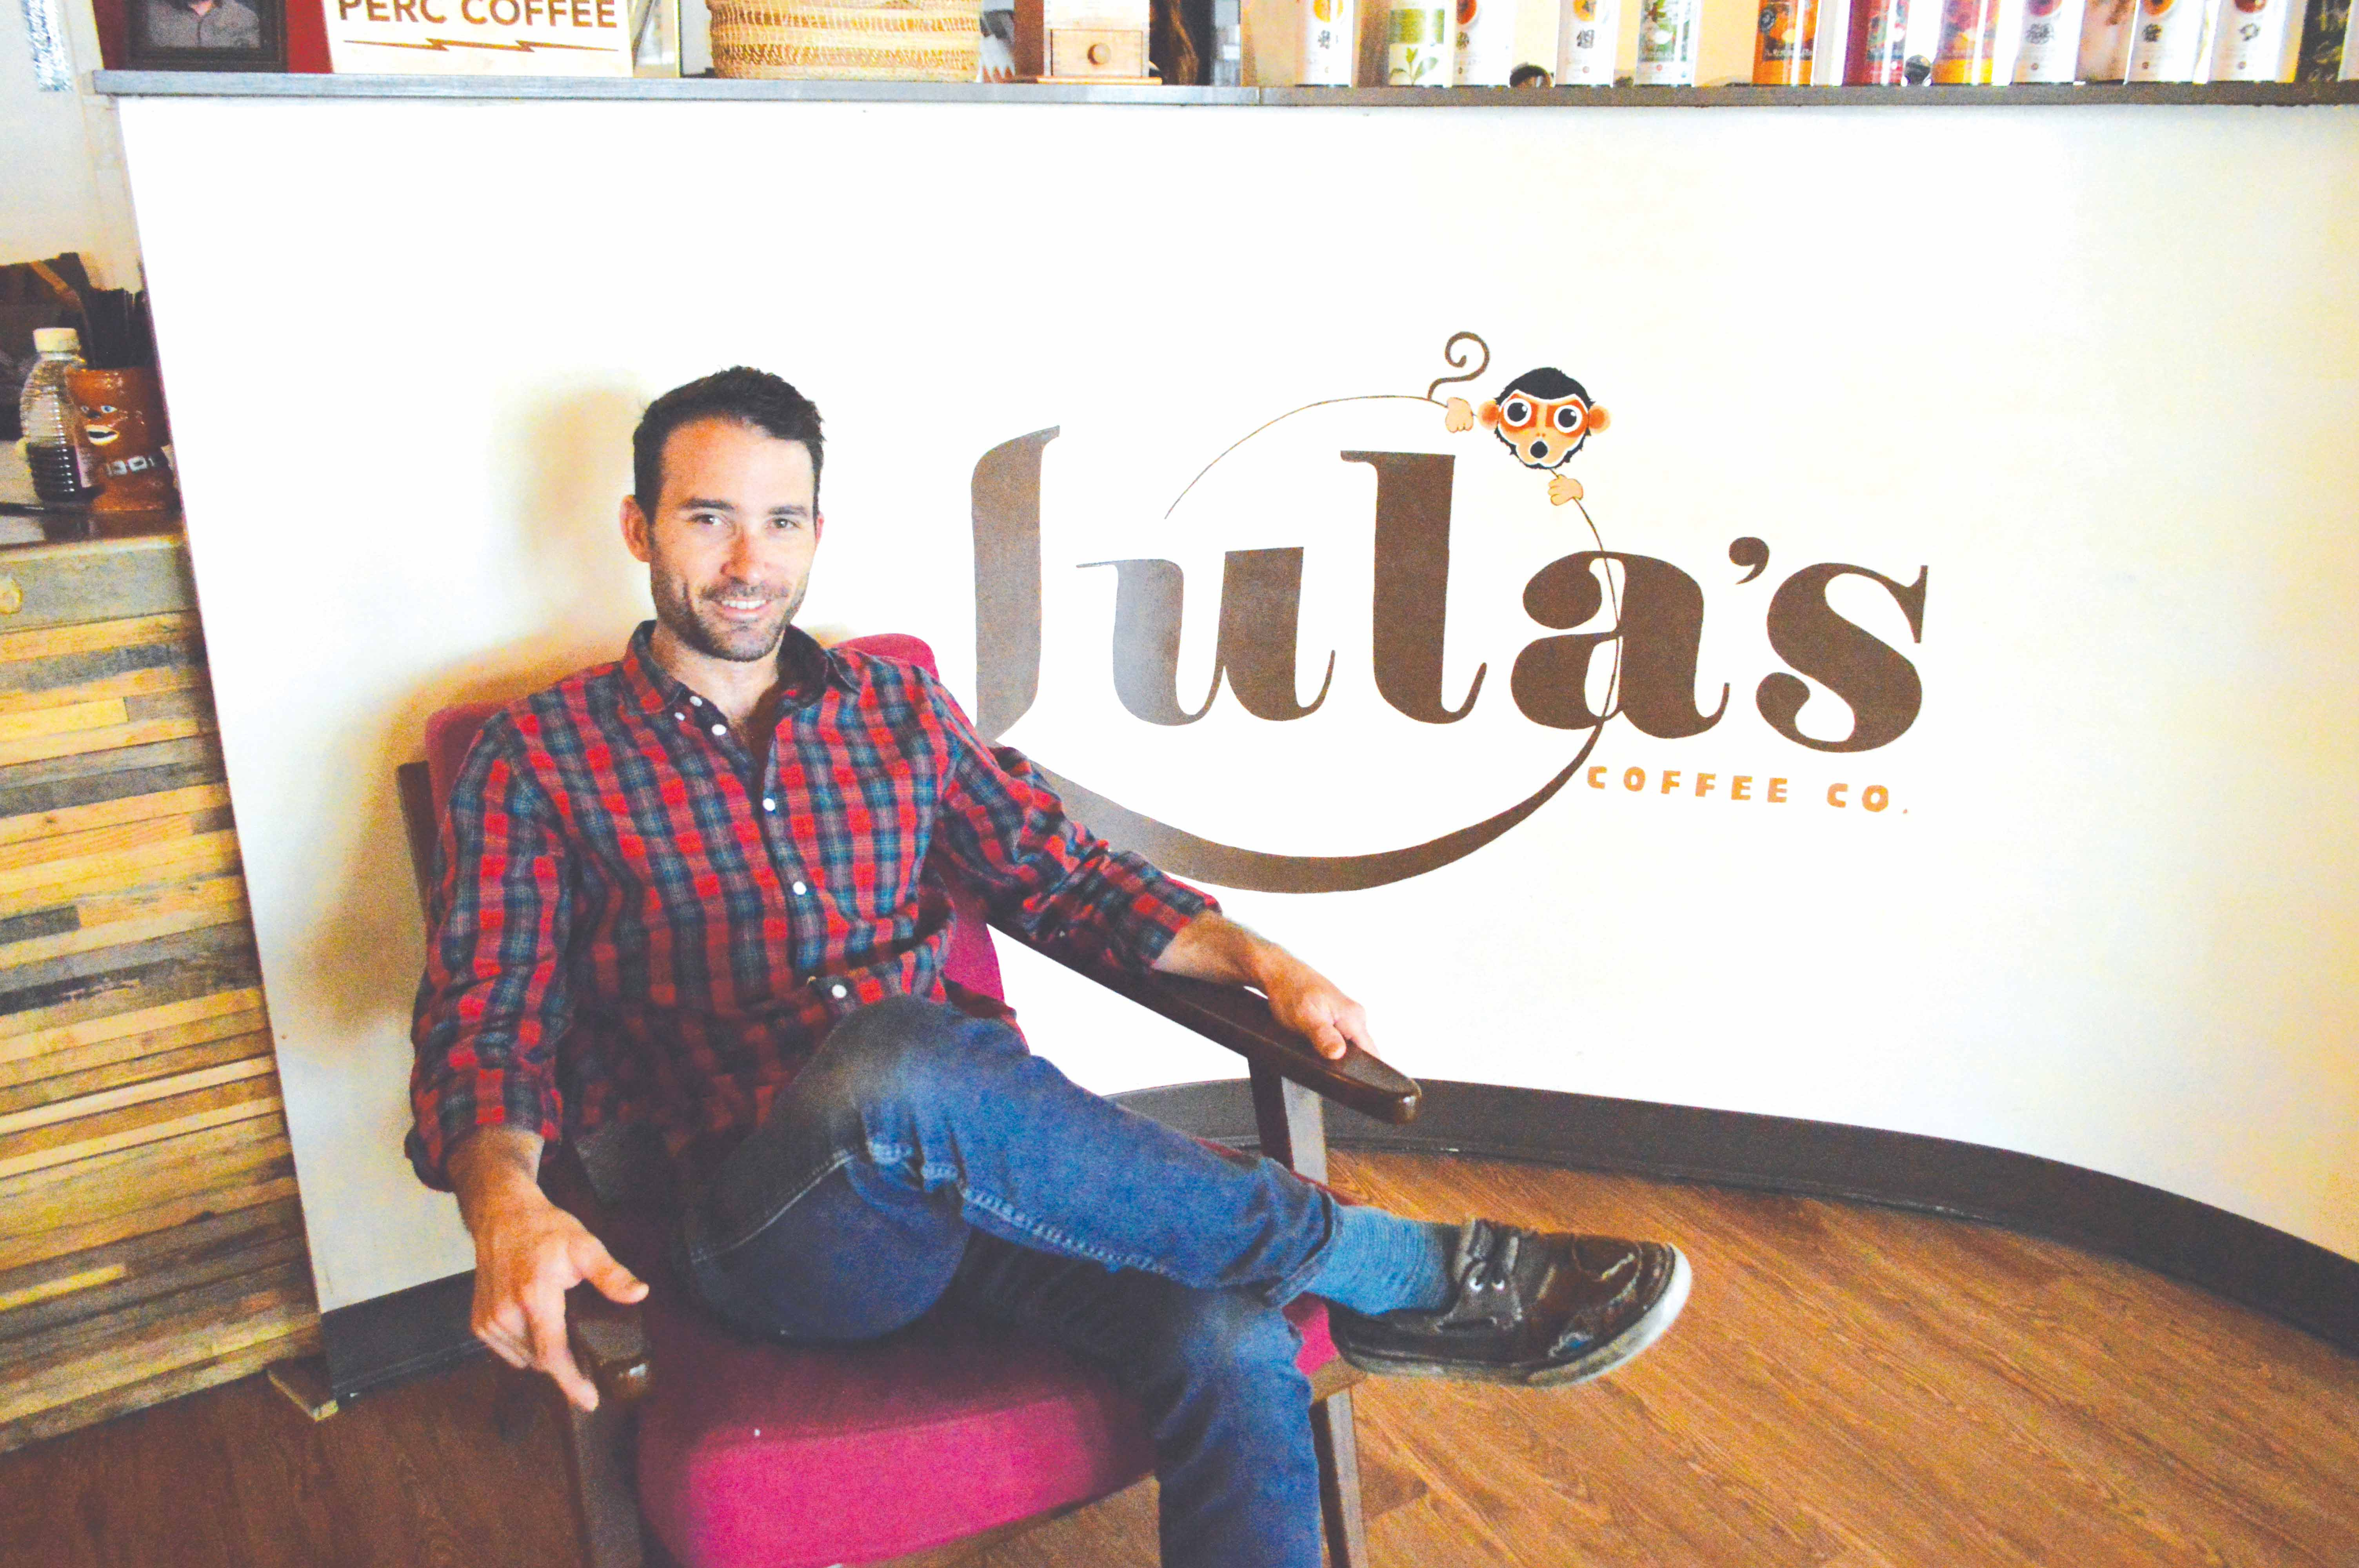 Jeff Felten, a 2010 graduate, has worked at Lula's Coffee Company since the company's opening in 2012. Felten started a coffee roasting company after developing a passion for the coffee industry.